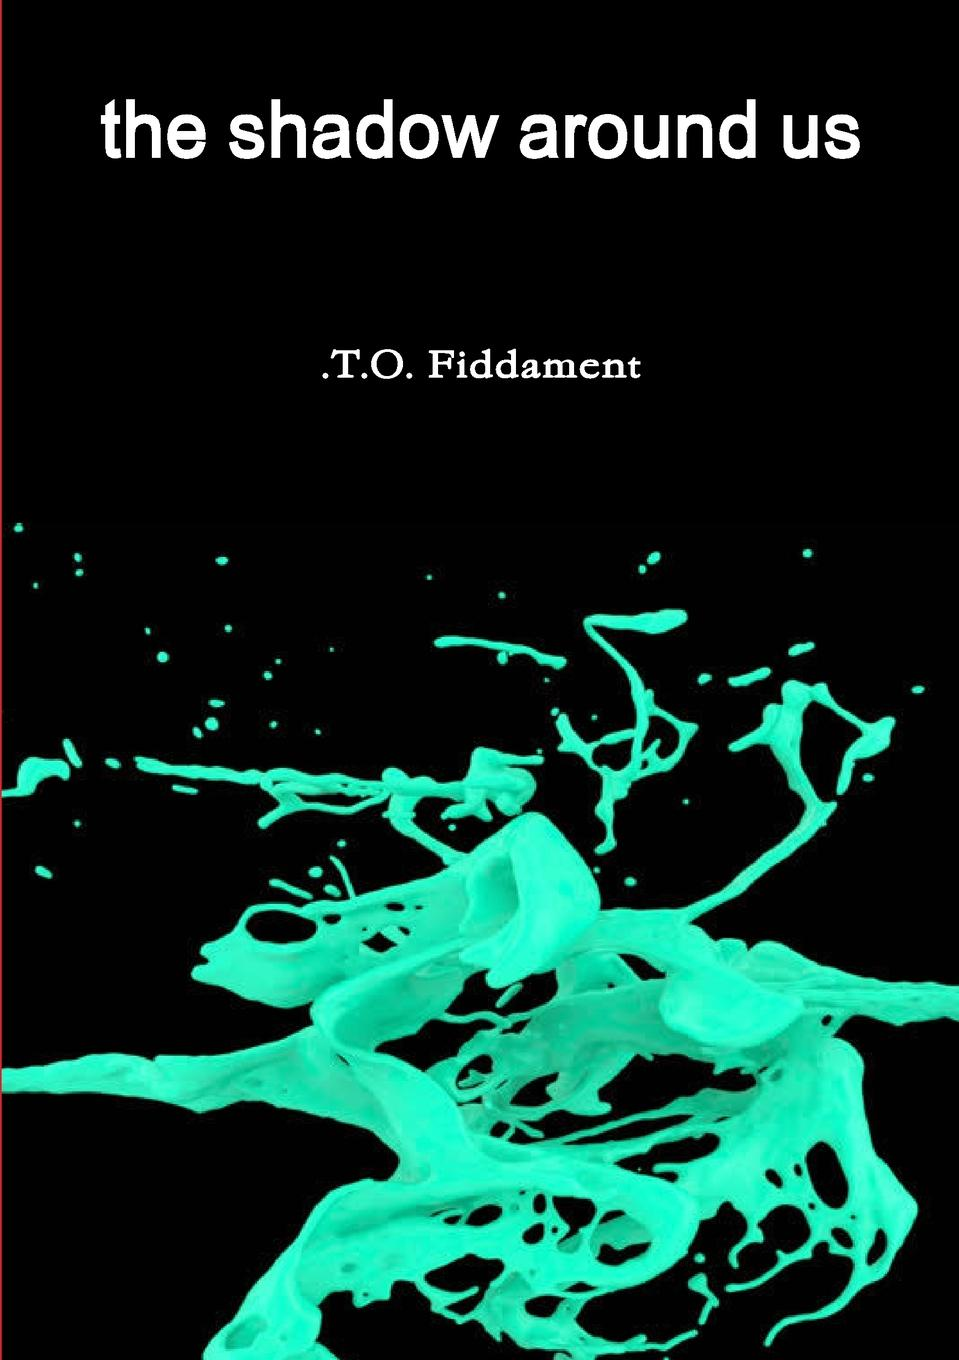 .T.O. Fiddament the shadow around us open doors and three novellas